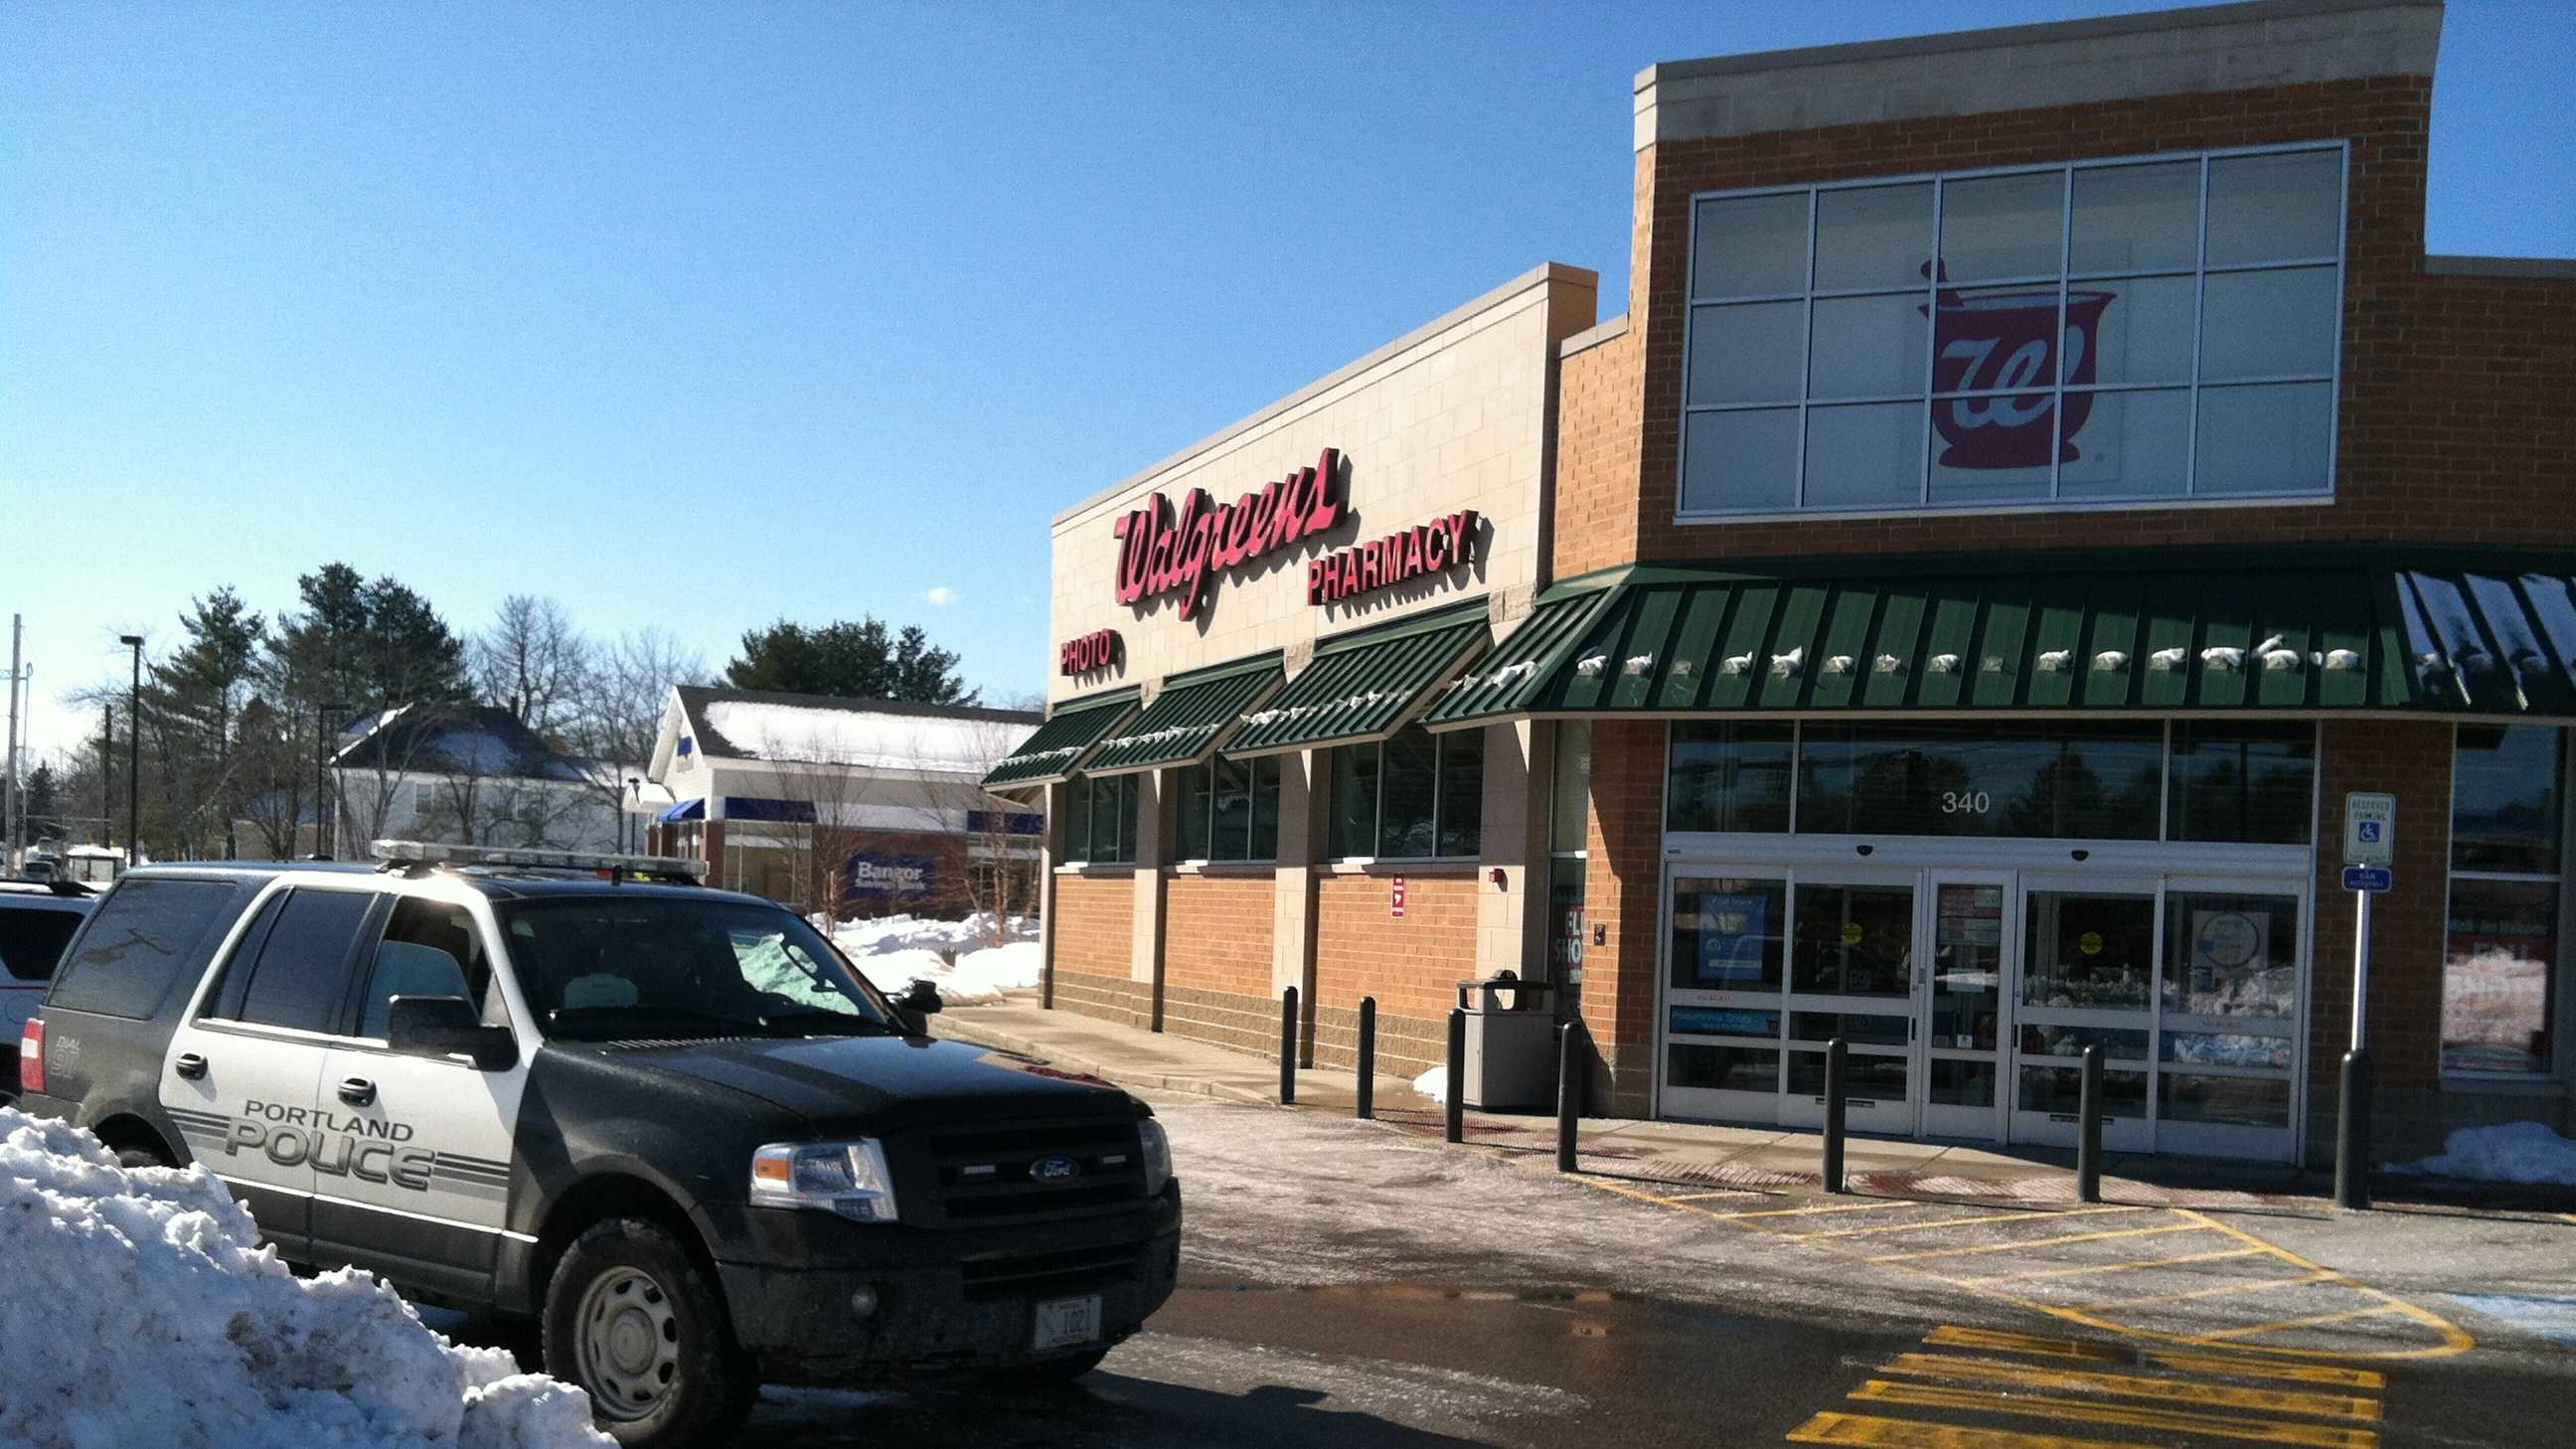 Portland Police at the Allen Ave. Walgreens that was held up on Sunday, Feb. 16 2014.